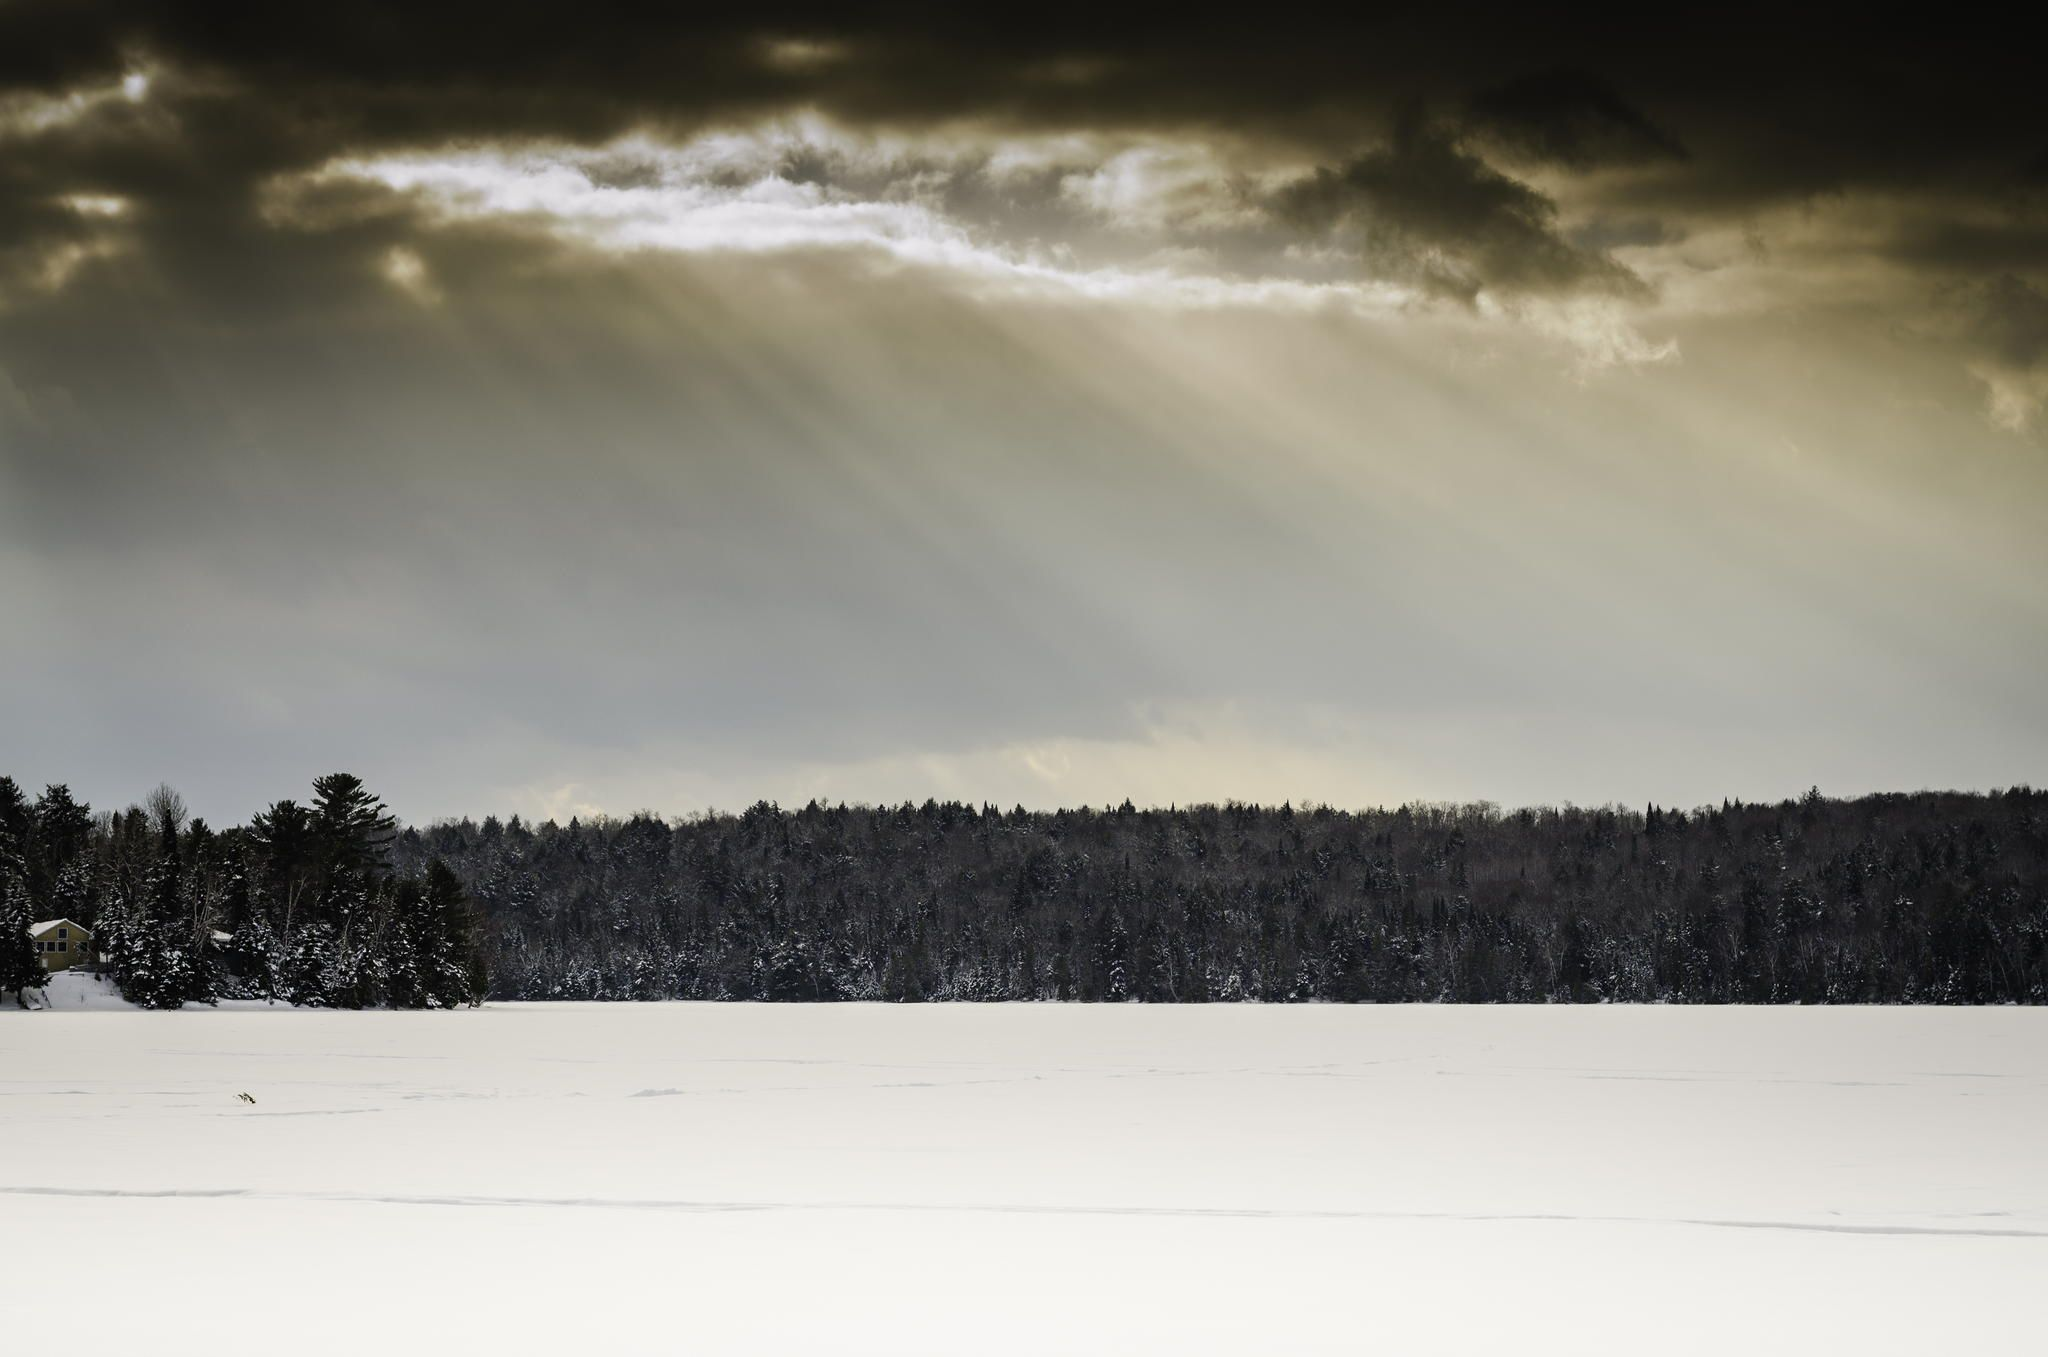 Rays of sunlight stream down from the clouds over a snow covered lake in Aroostook County.  A cottage can be seen across the lake tucked in amongst the snow covered trees.